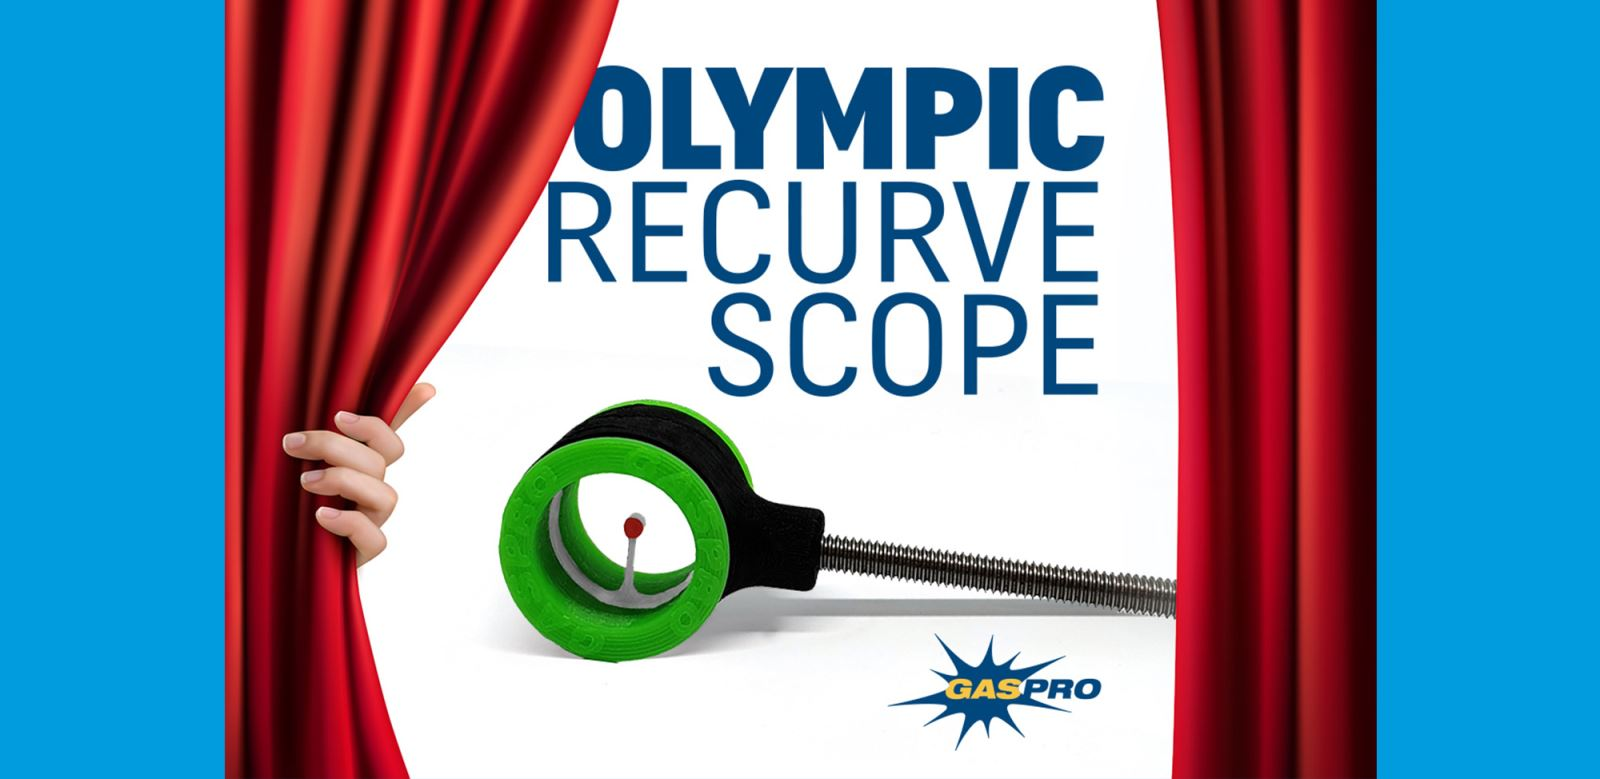 Gas Pro Olympic Recurve Scope